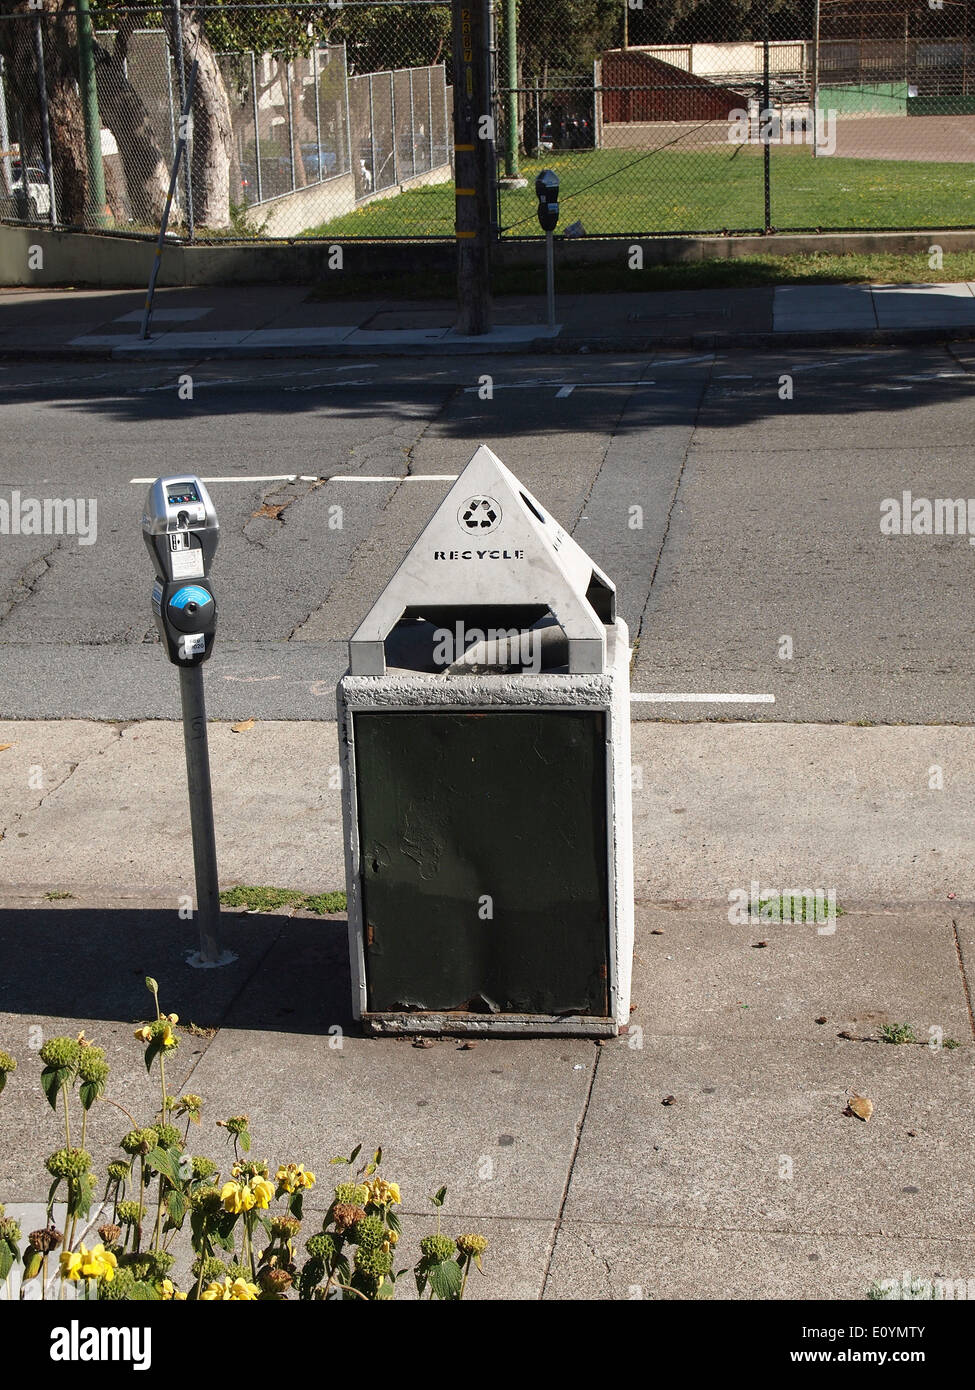 recycling container & parking meter, San Francisco - Stock Image